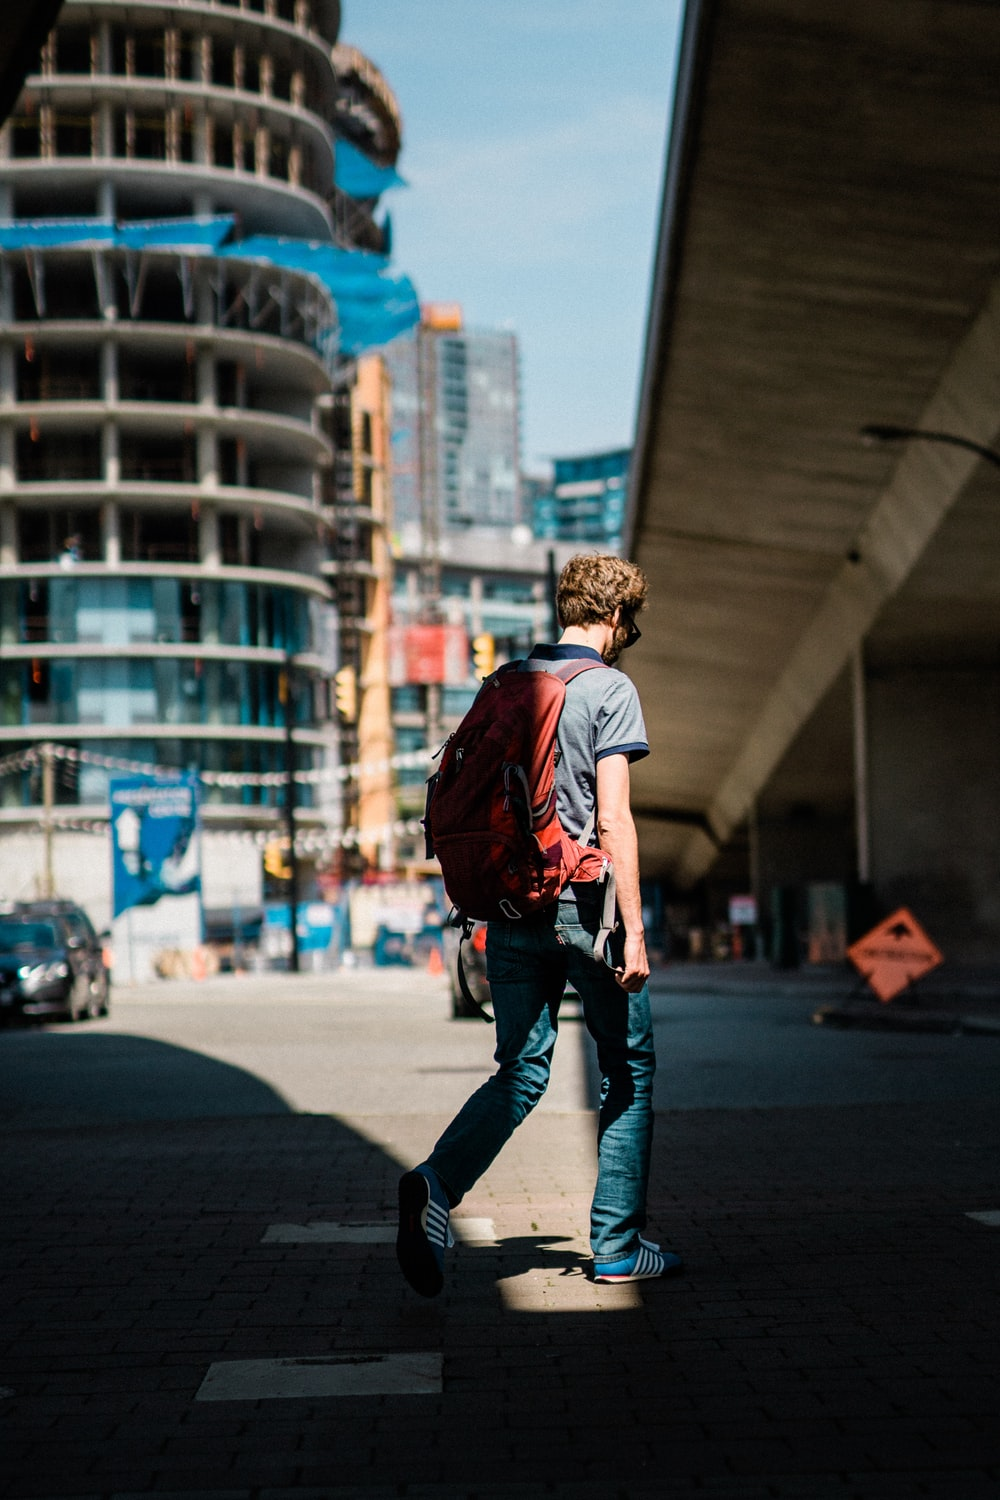 man walking on road near building